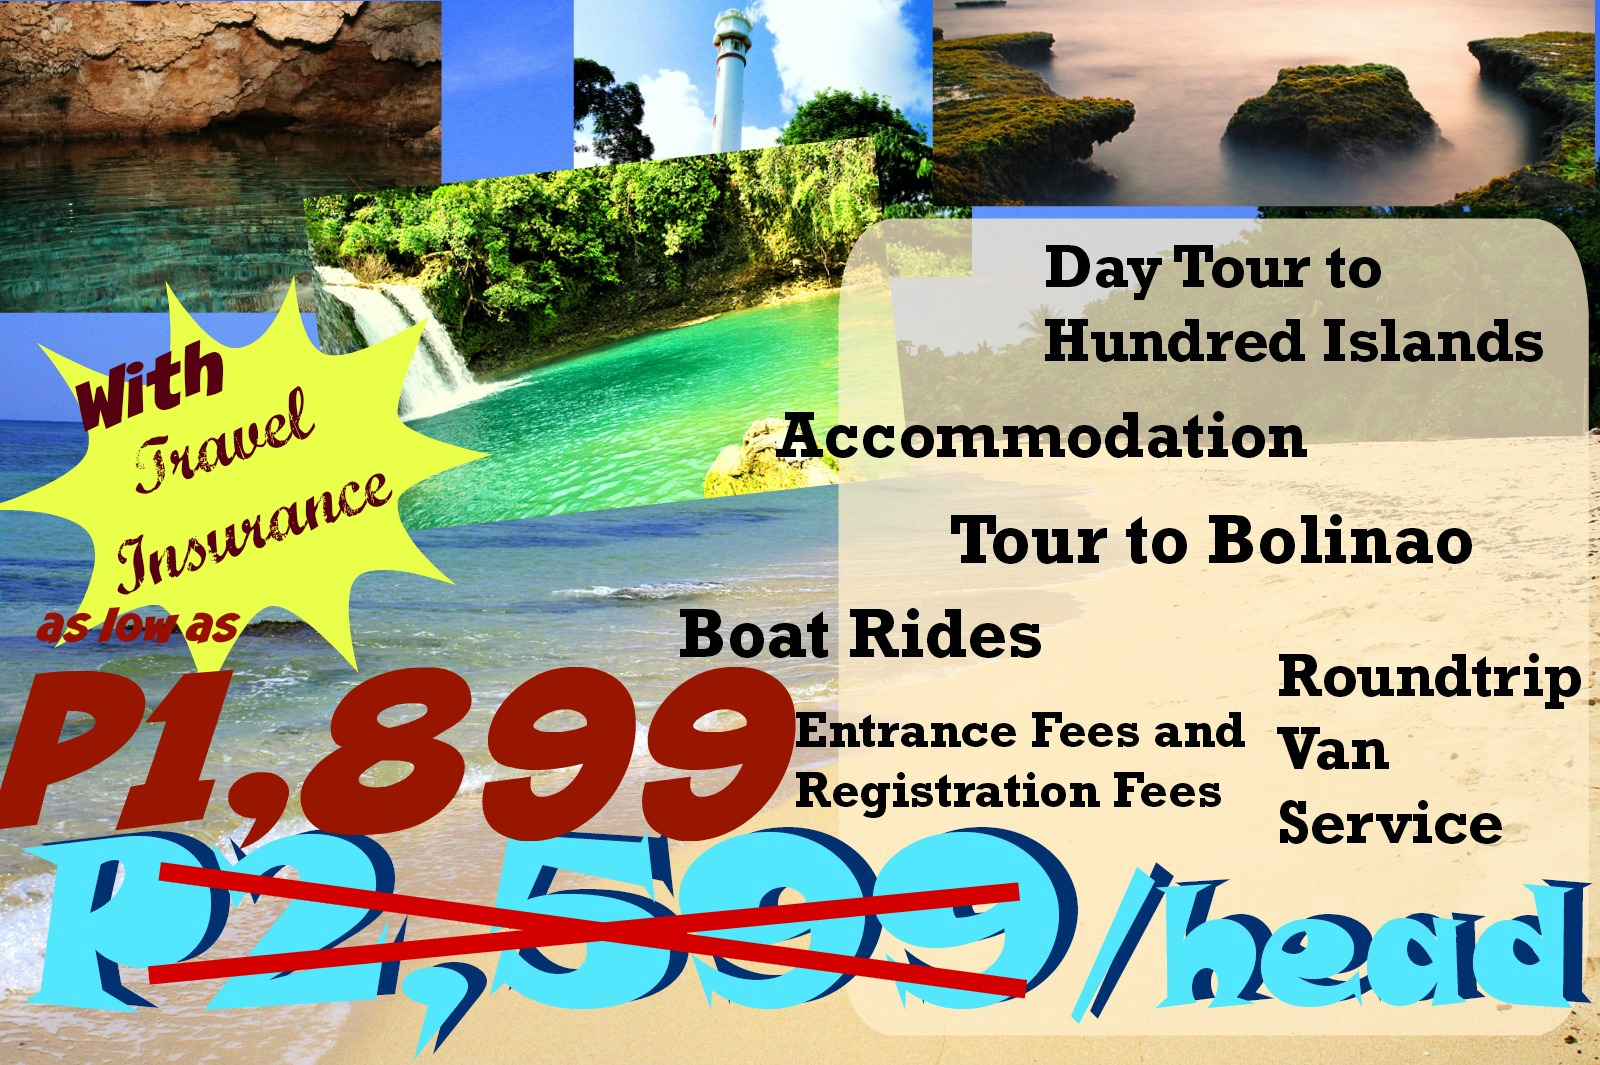 Hundred Island Tour Package